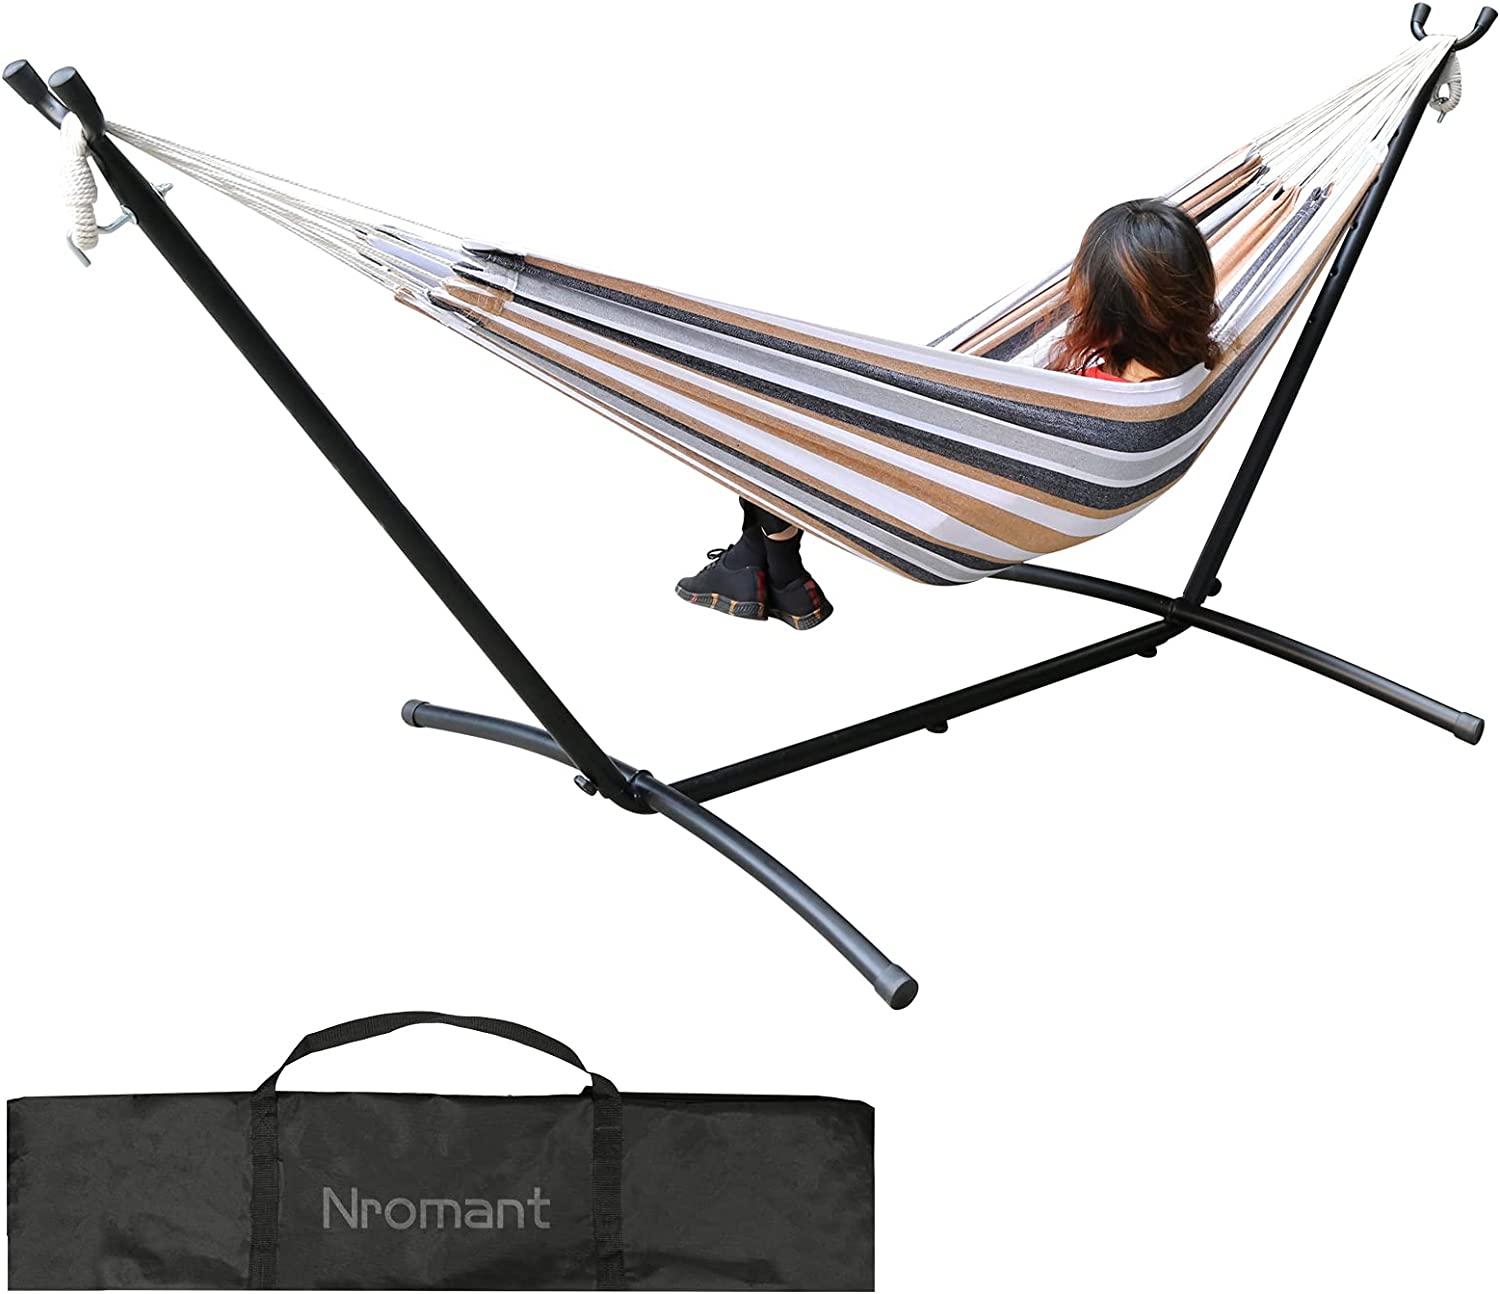 Double Hammock with Space Outlet sale feature Saving Steel lb Stand 450 Capacity - Free Shipping Cheap Bargain Gift